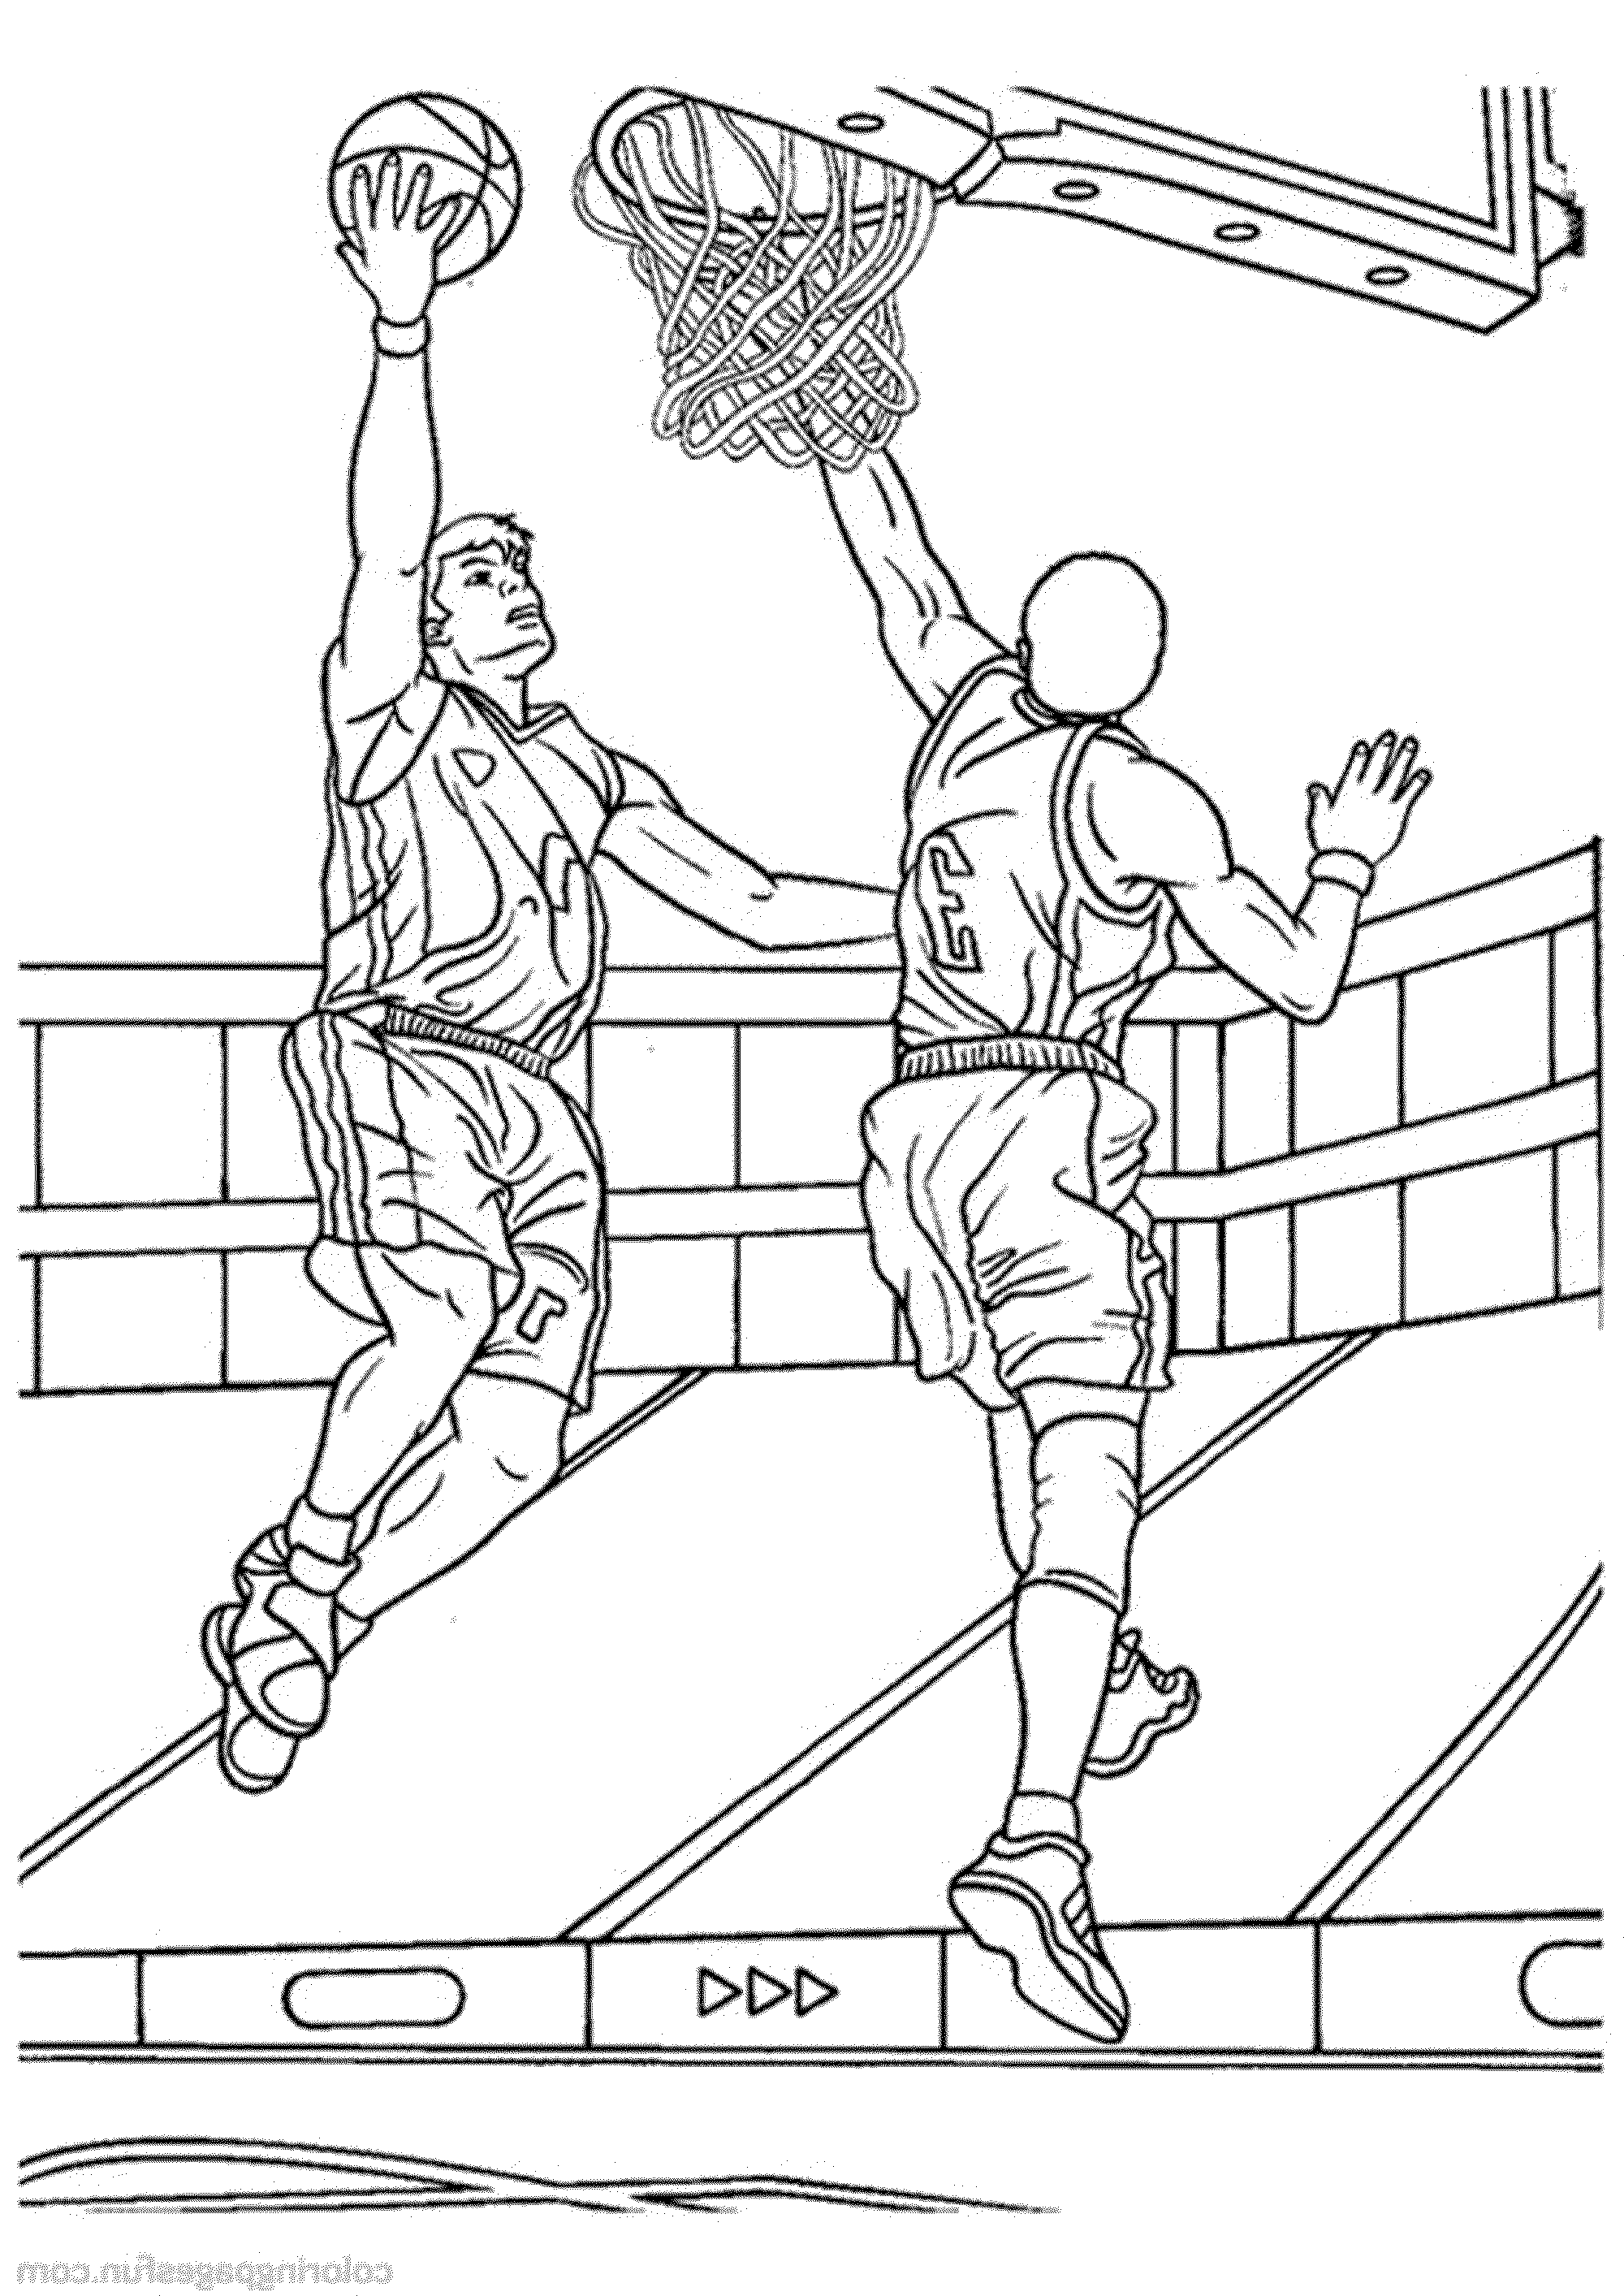 basketball pictures to color basketball coloring pages getcoloringpagescom to color pictures basketball